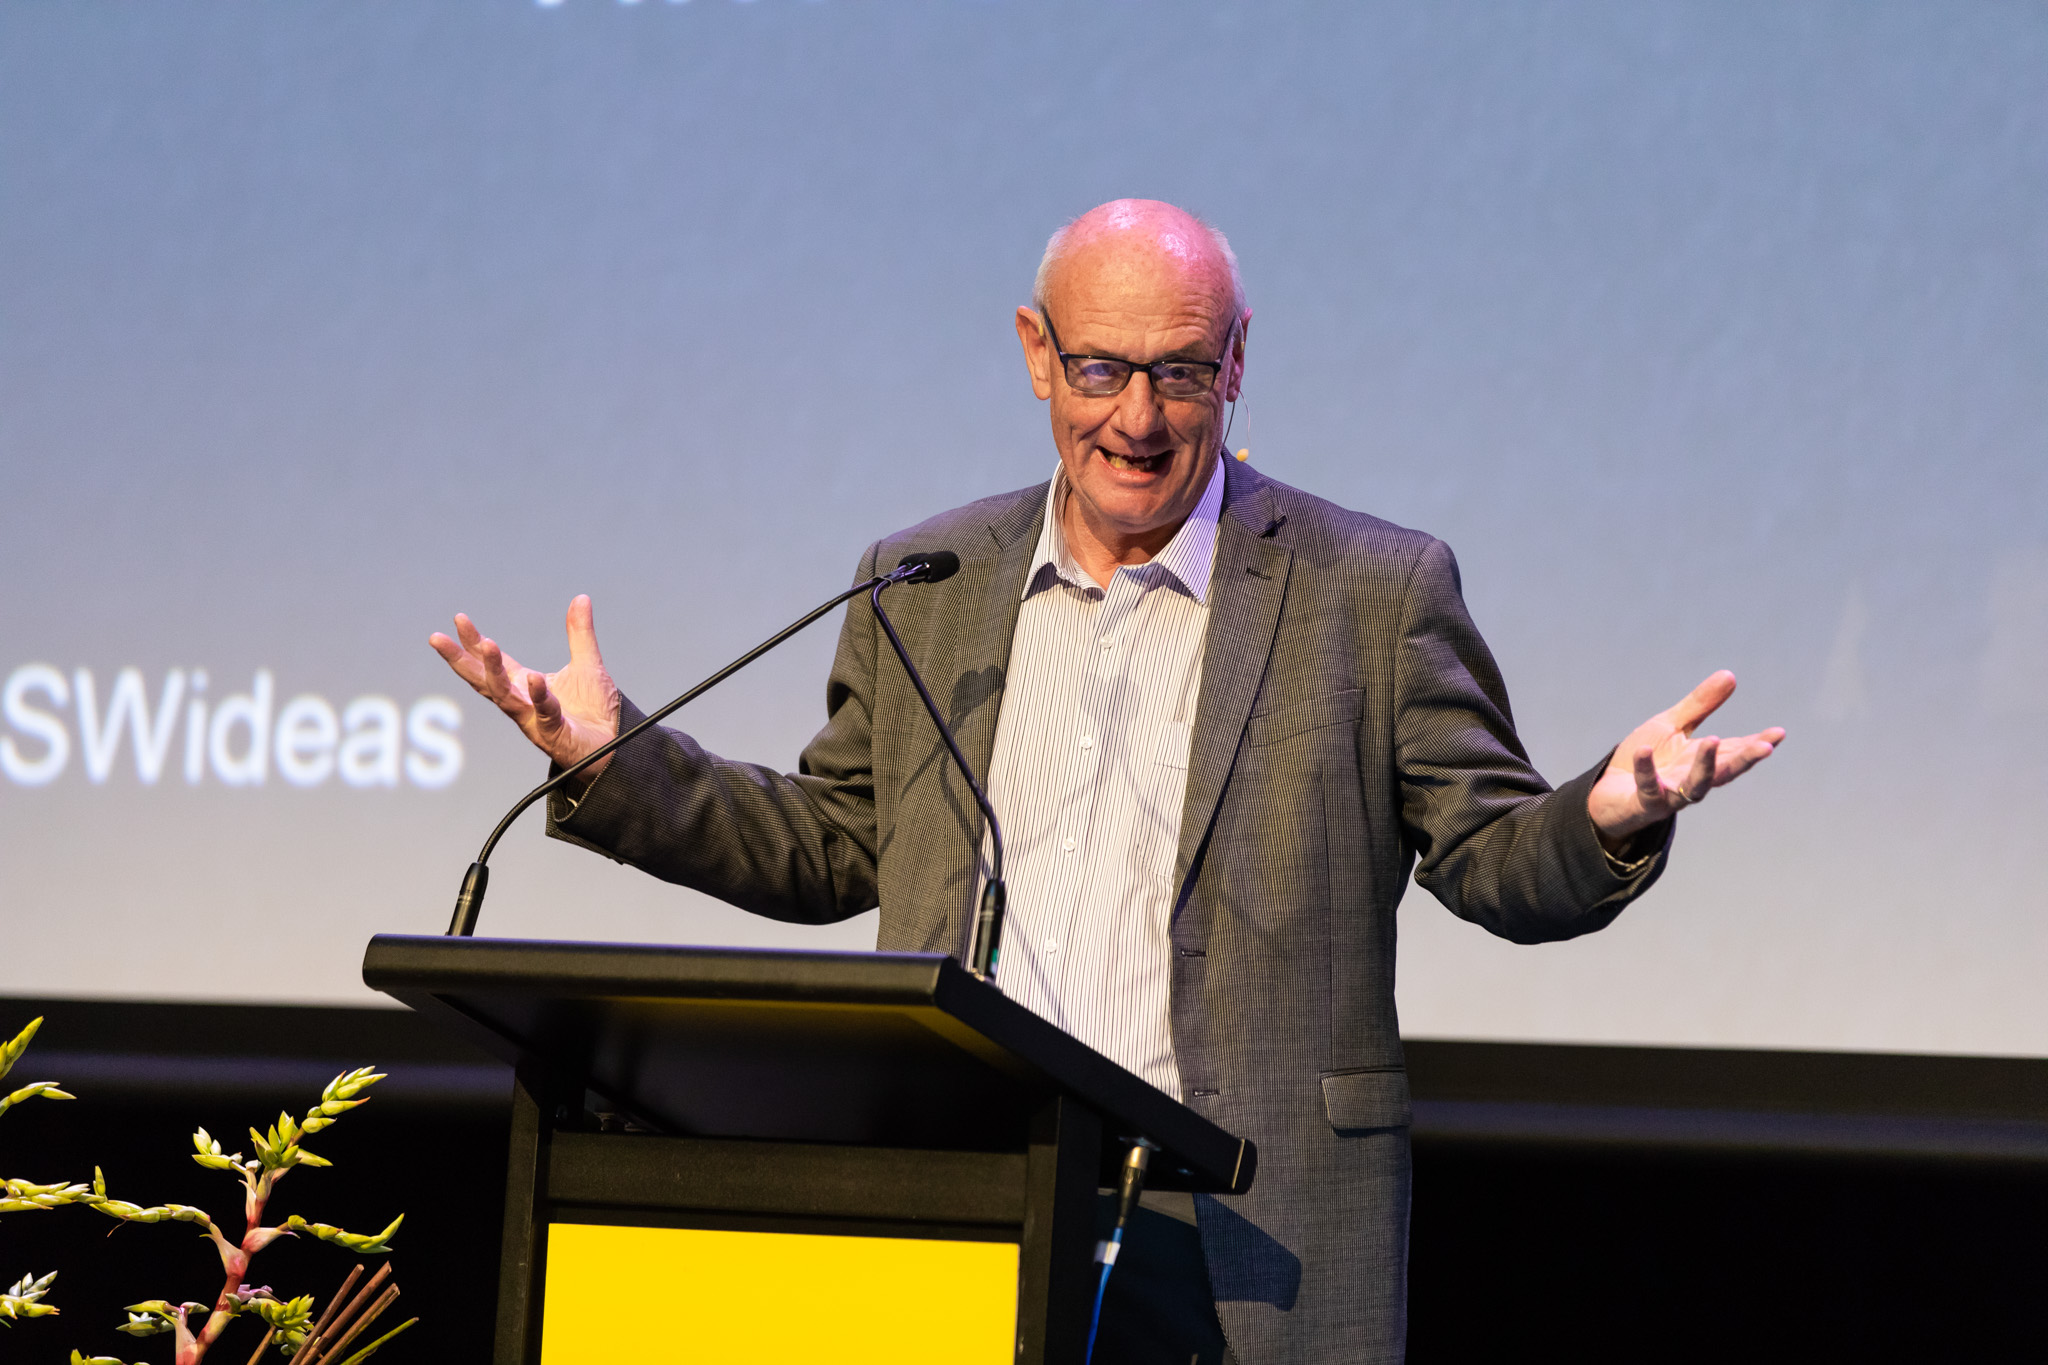 Tim Costello speaking on stage